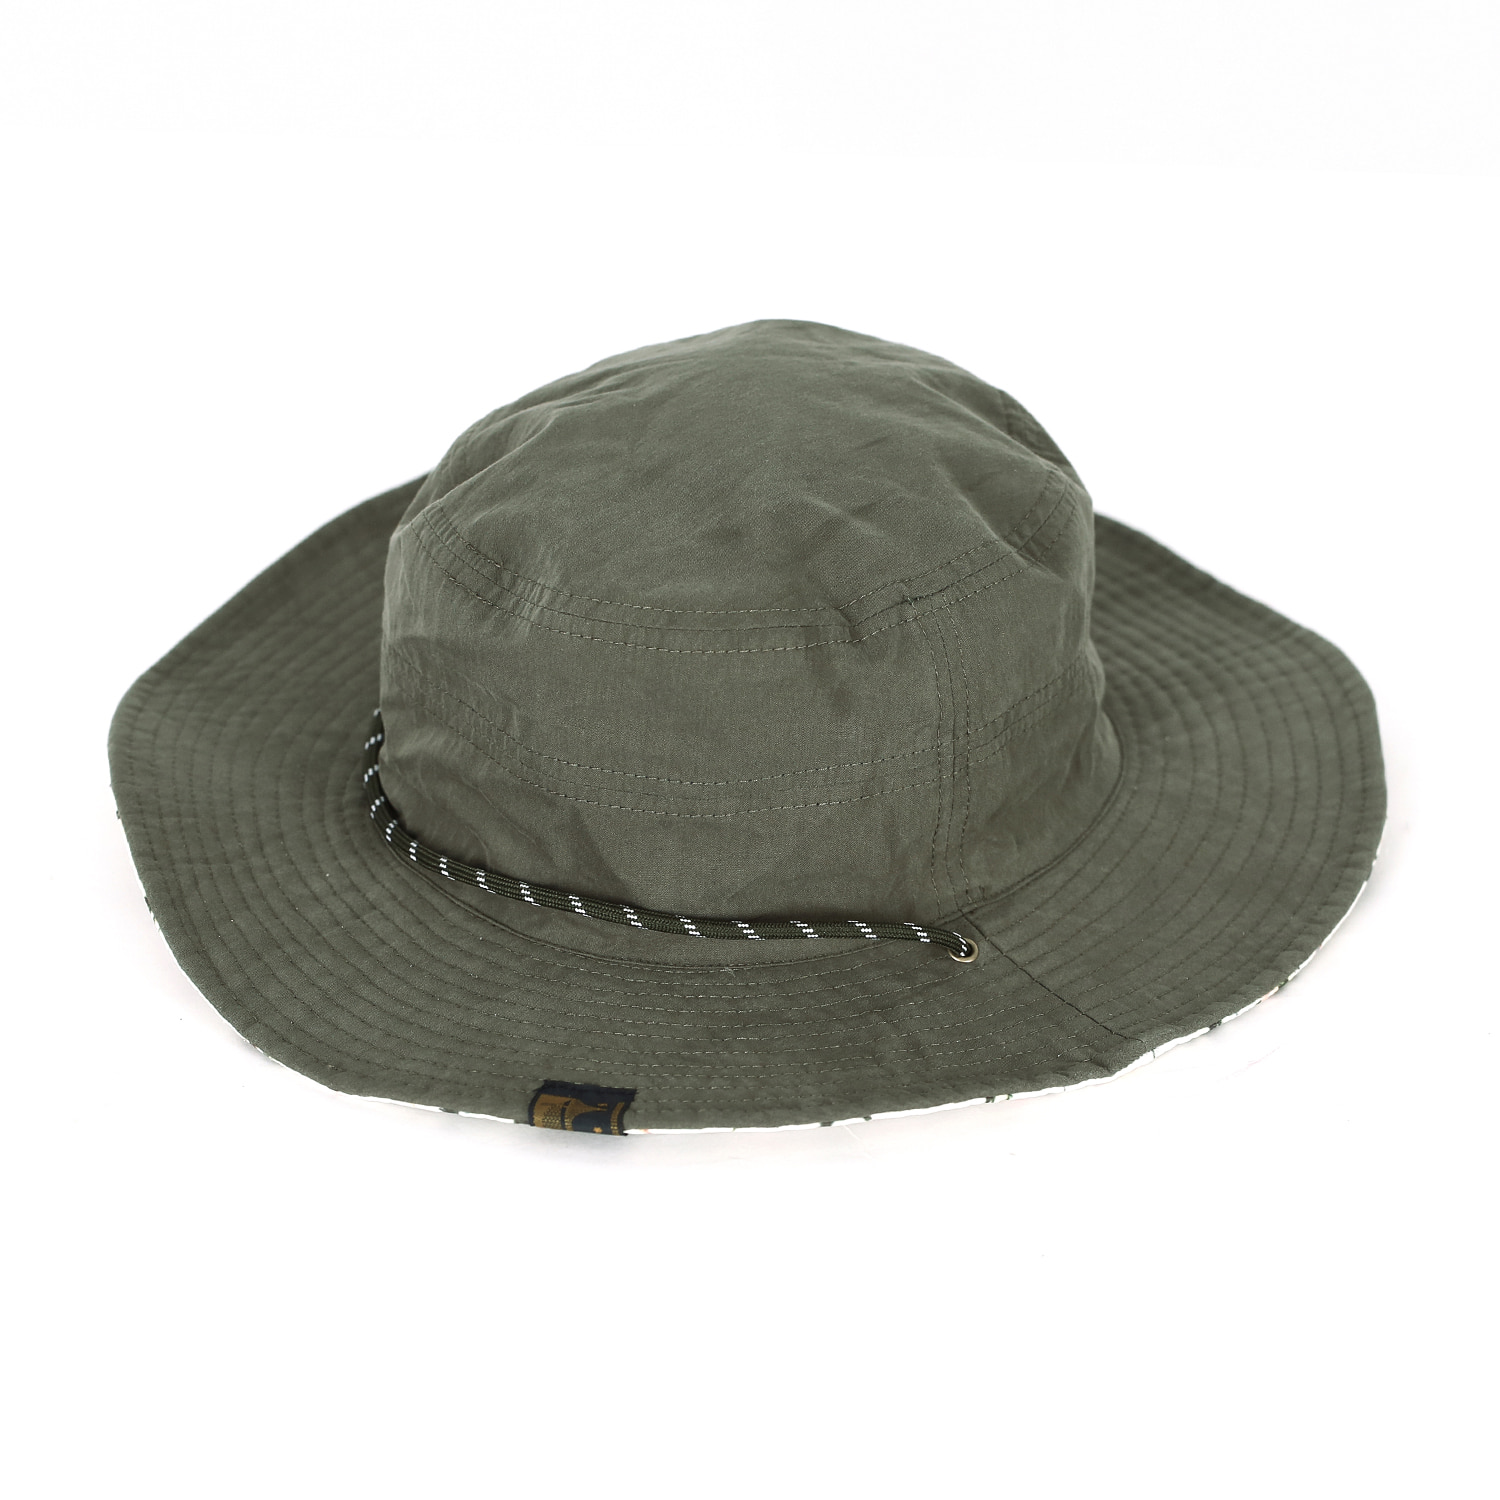 Joint R/Hat - Palm/Olive